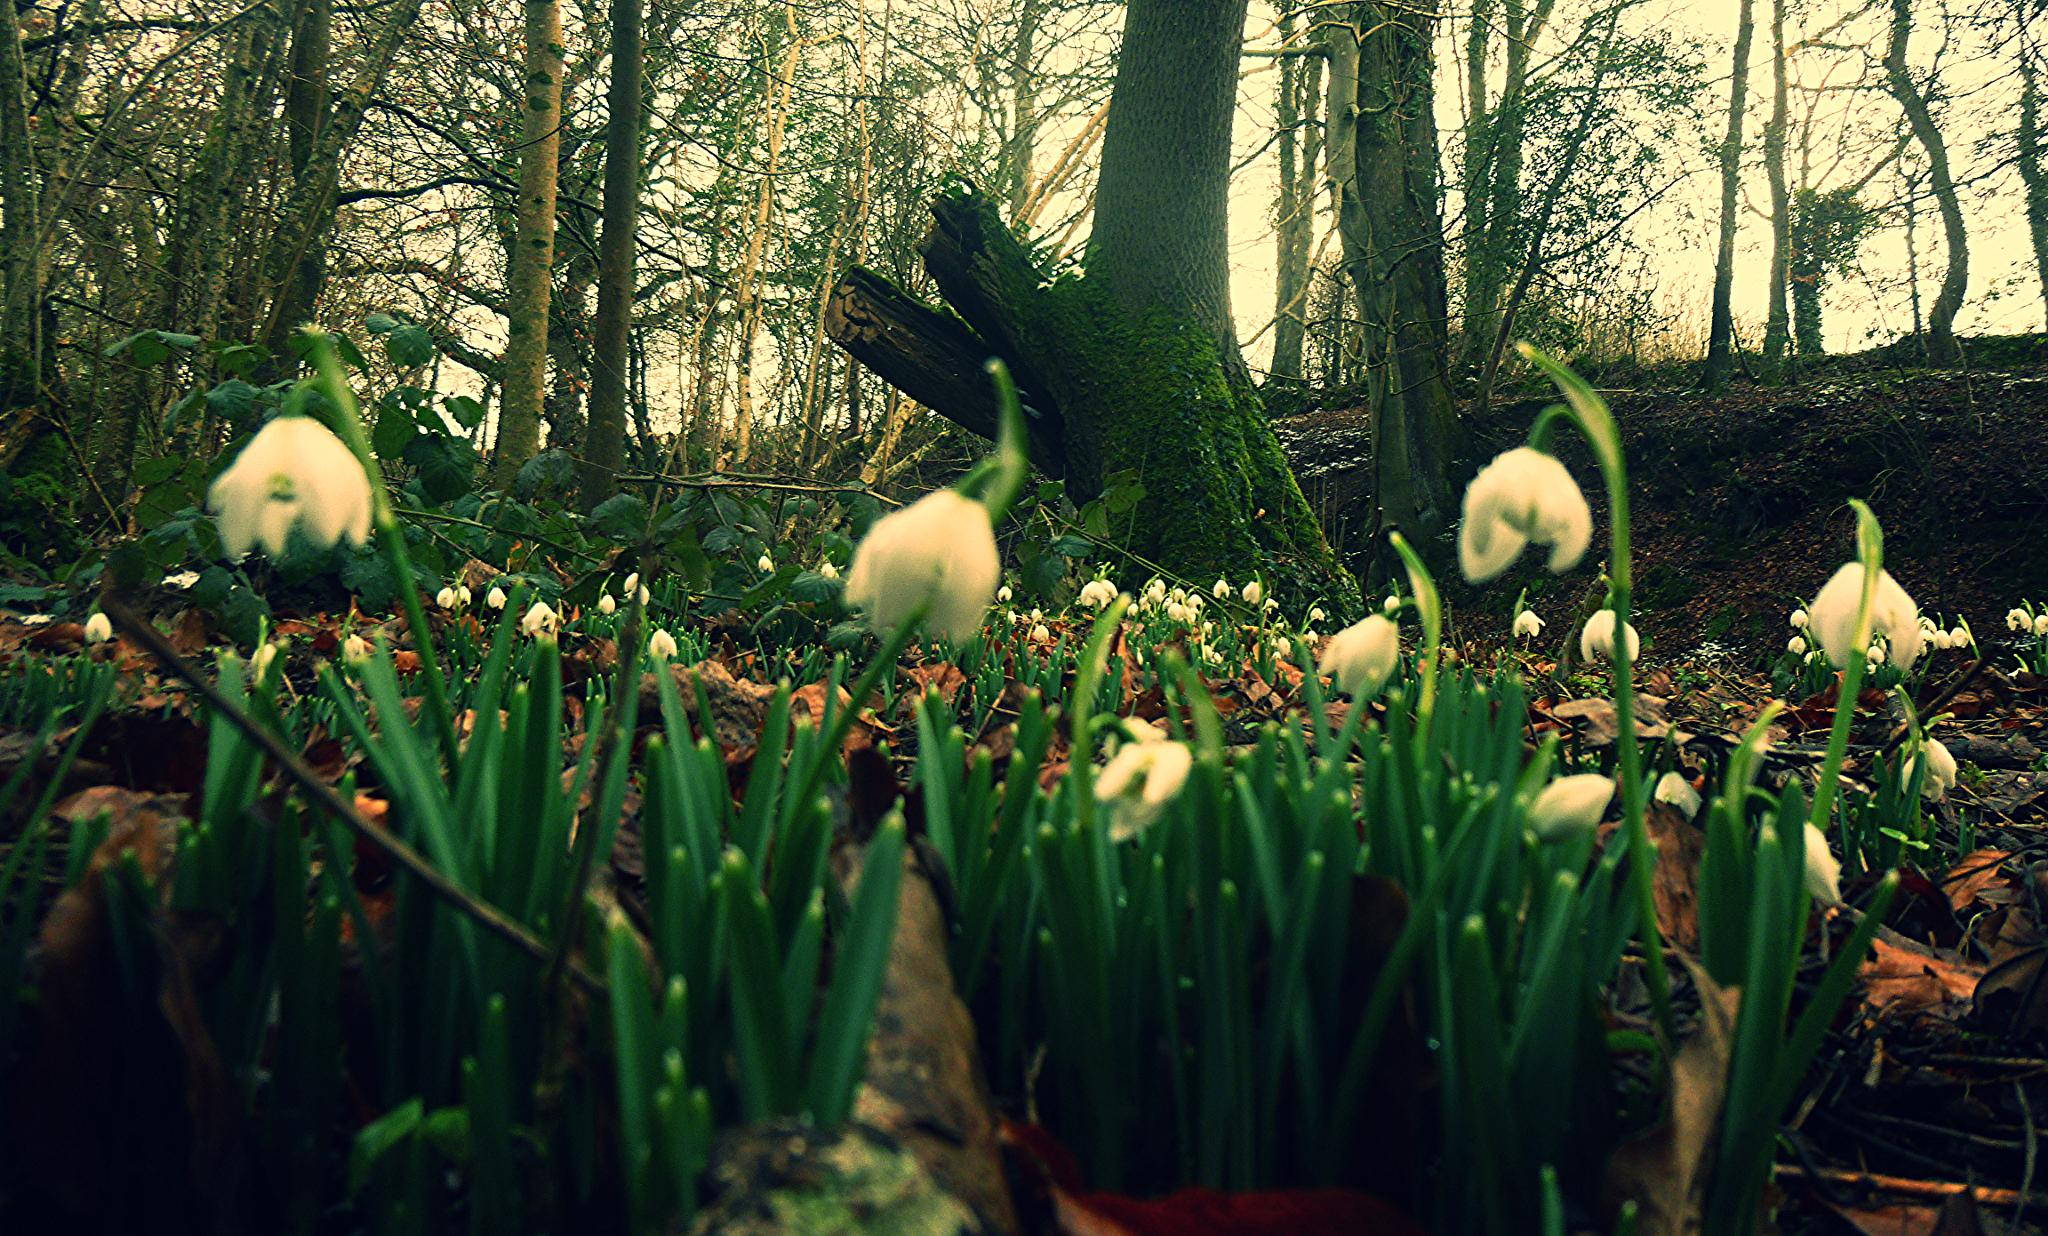 snowdrops by chris.adams.3557